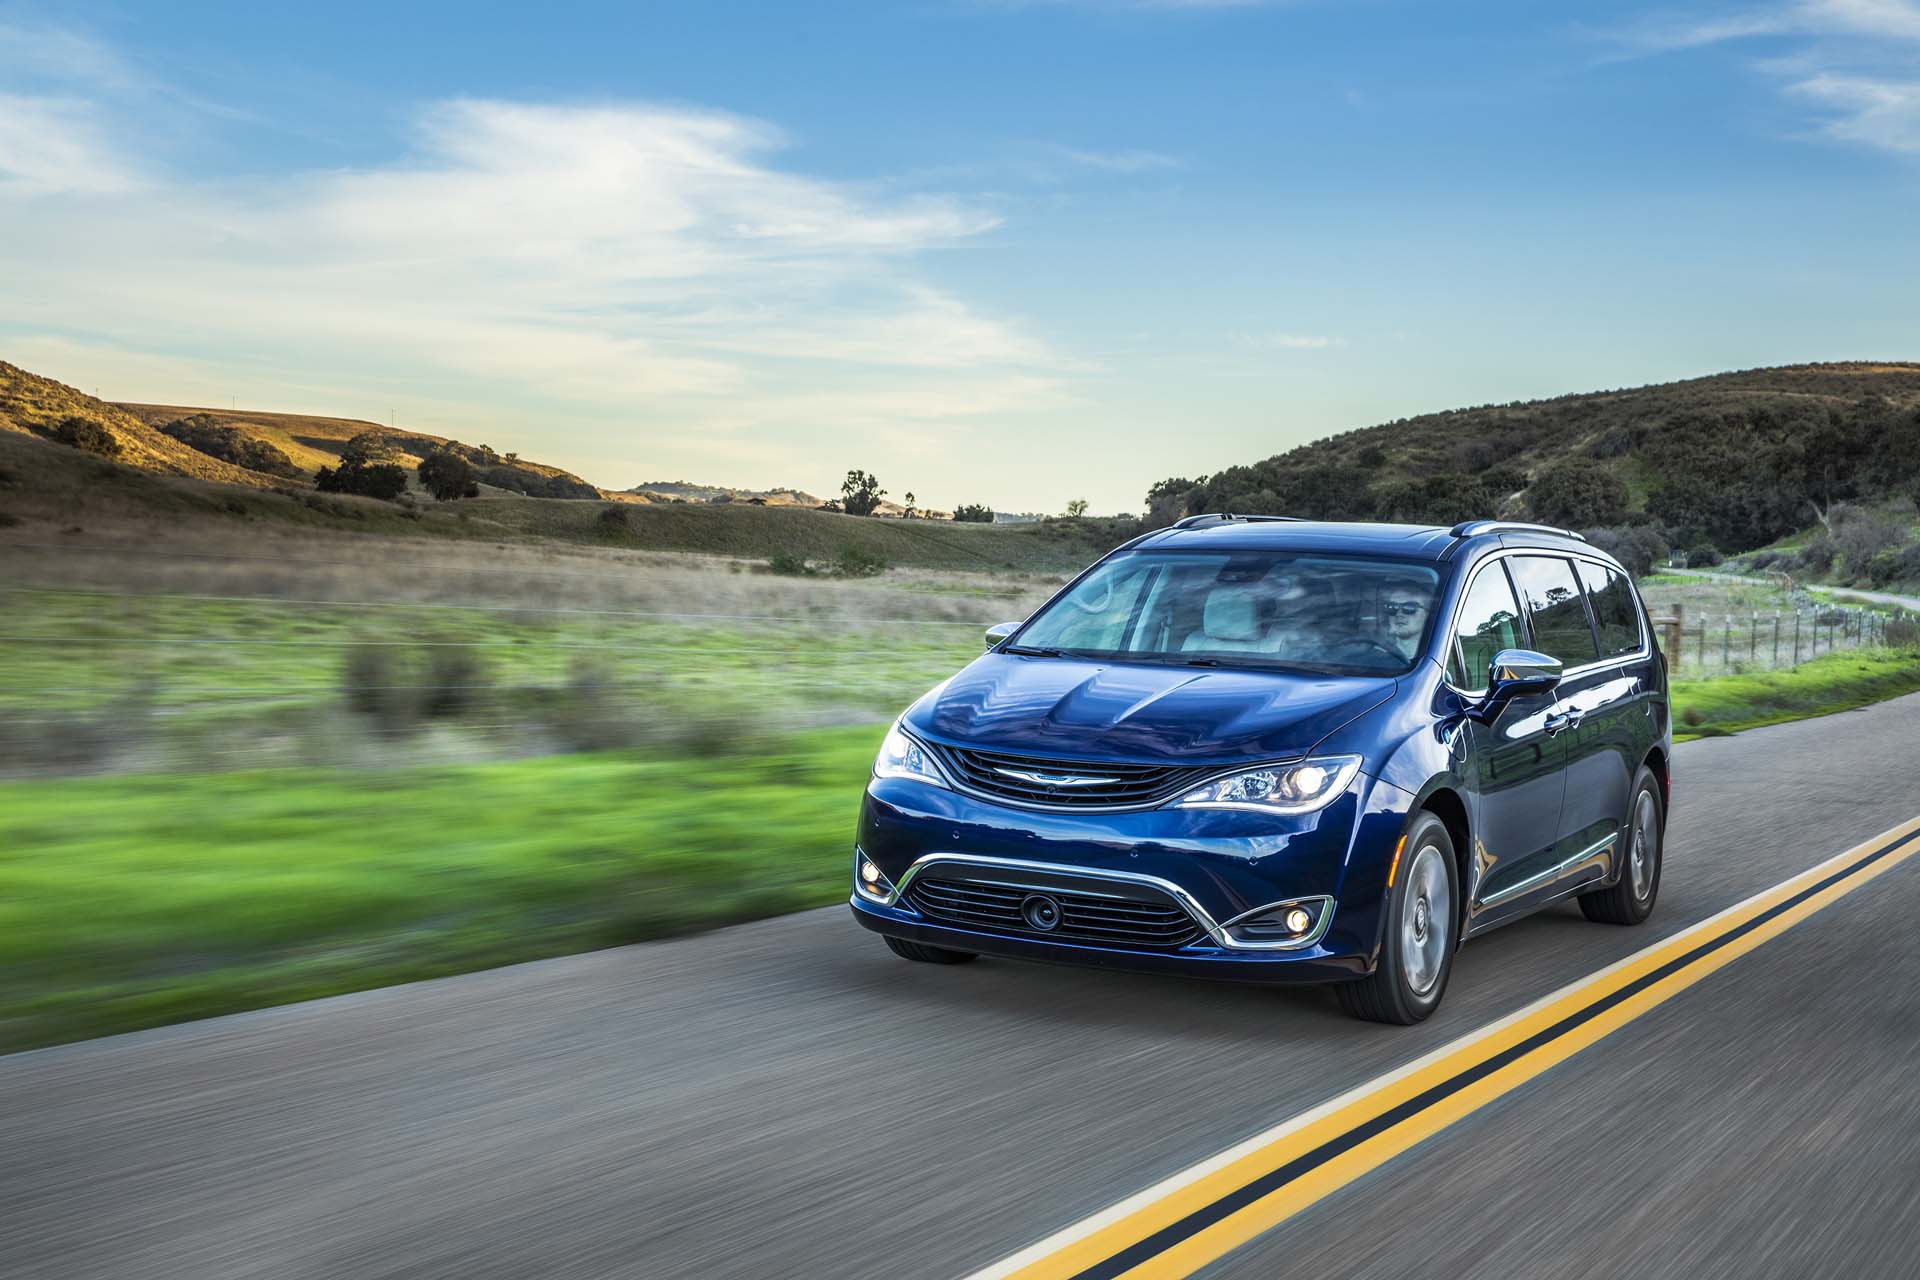 2017 chrysler pacifica hybrid review ratings specs prices and photos the car connection. Black Bedroom Furniture Sets. Home Design Ideas